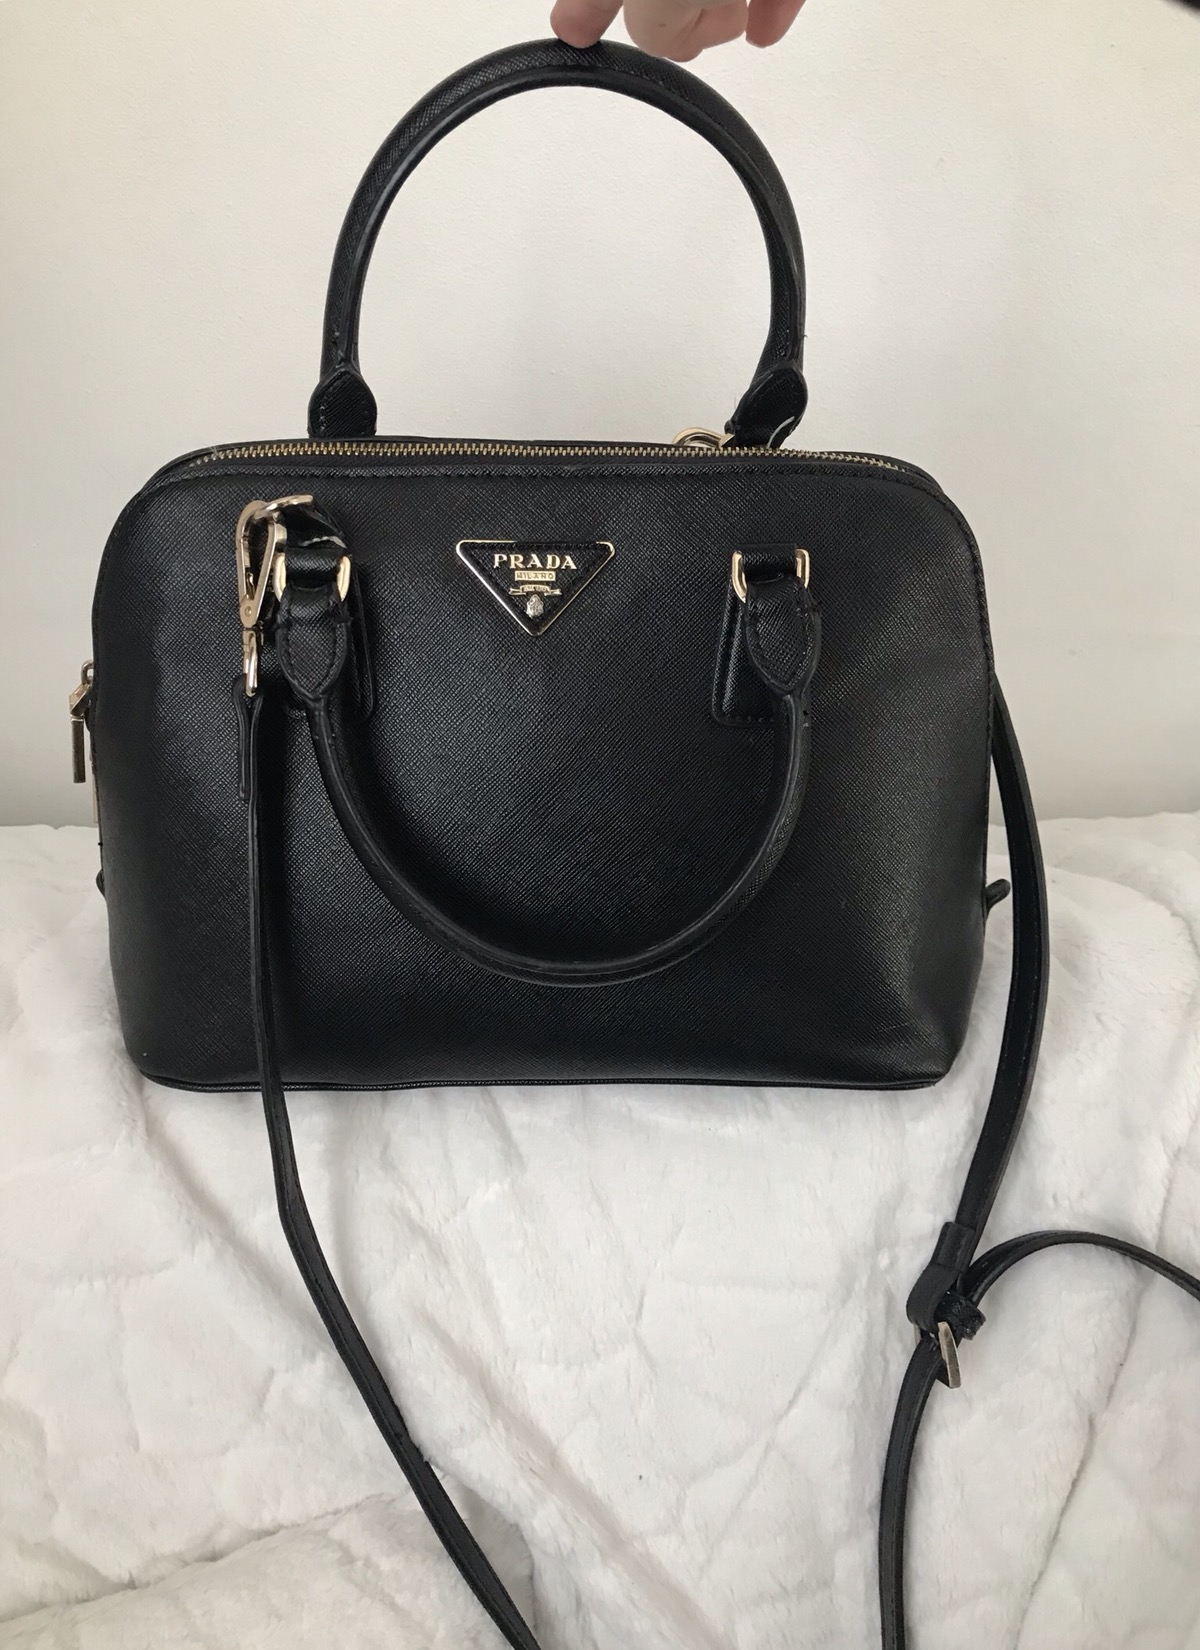 c317576ccf1e Prada  STEAL  PRADA PROMENADE SAFFIANO LEATHER BAG💰FLASH DEAL 💰 GREAT  PRICE GOOD CONDITION Size one size - Bags   Luggage for Sale - Grailed